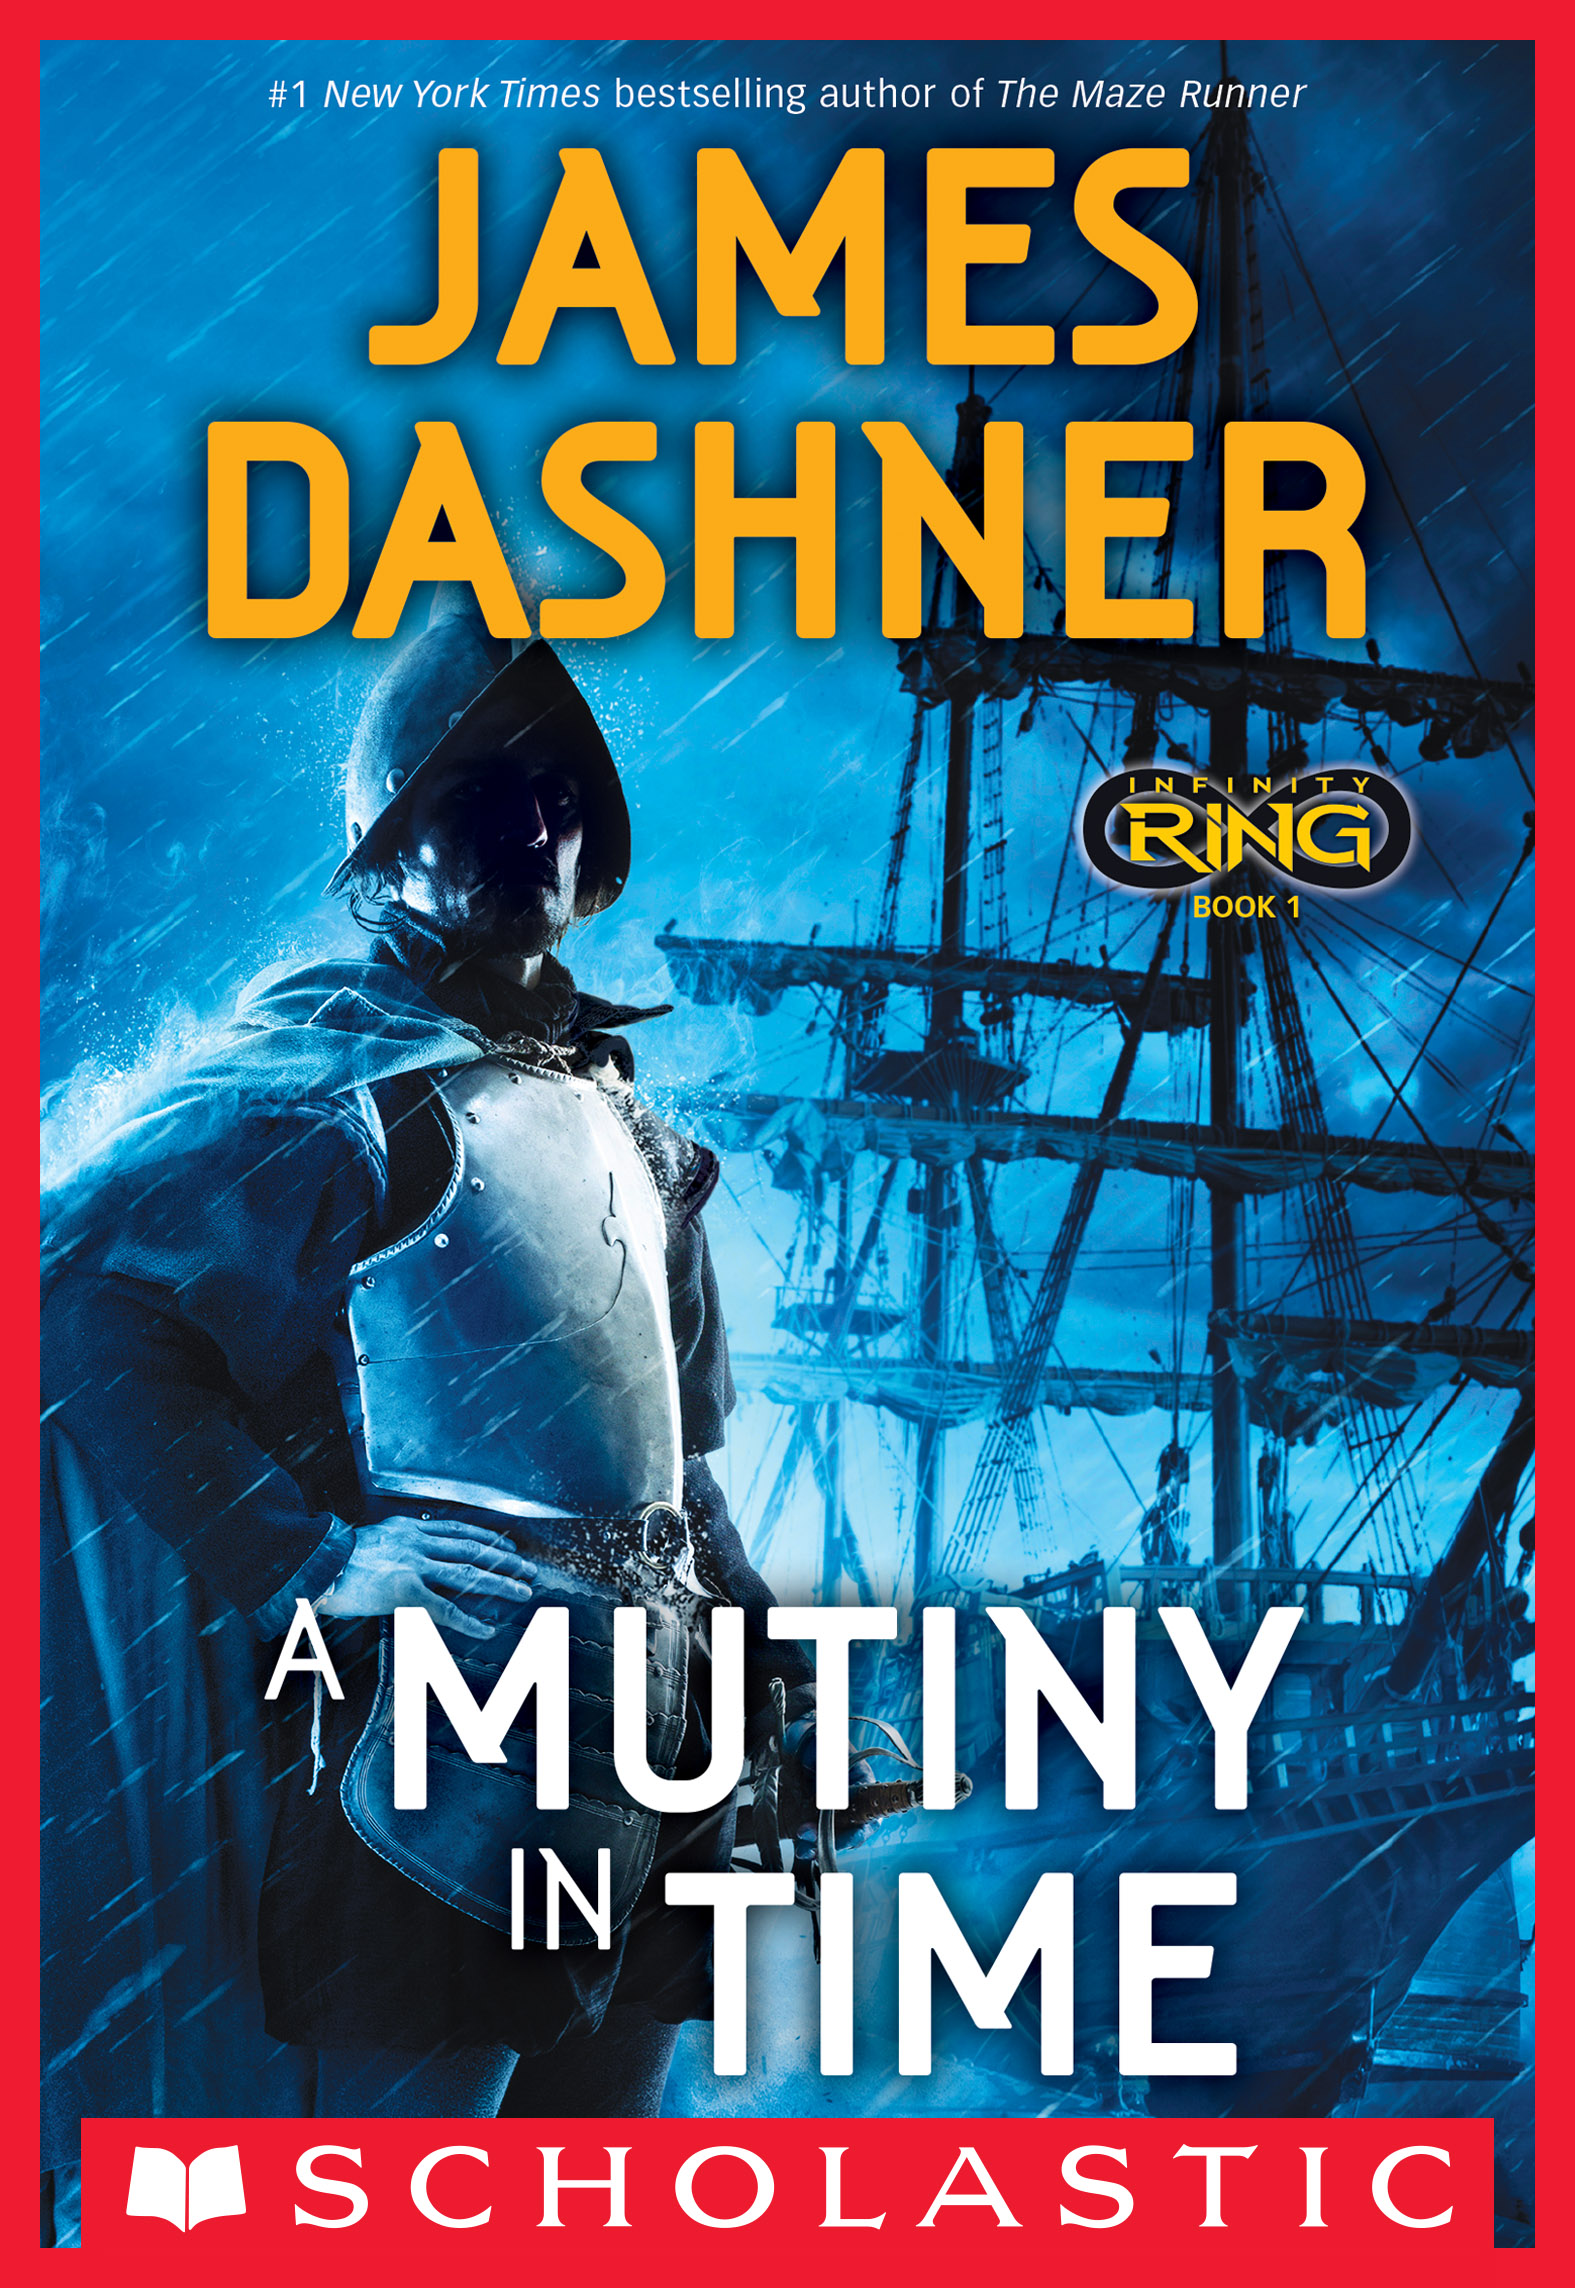 Vignette du livre Infinity Ring Book 1: A Mutiny in Time